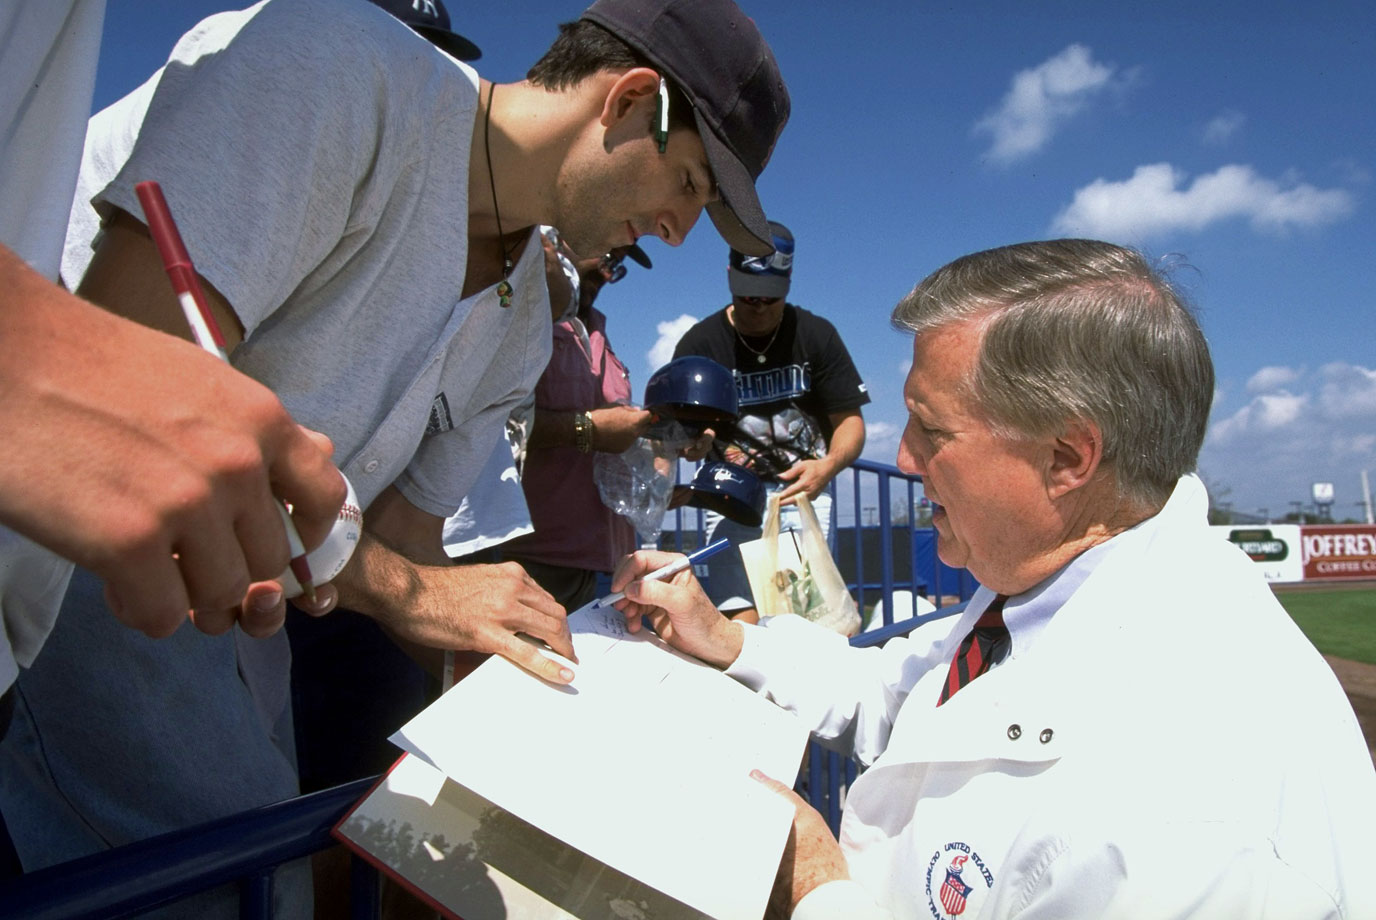 George Steinbrenner signs autographs for fans during the New York Yankees spring training on Feb. 23, 1996 at Legends Field in Tampa, Fla.